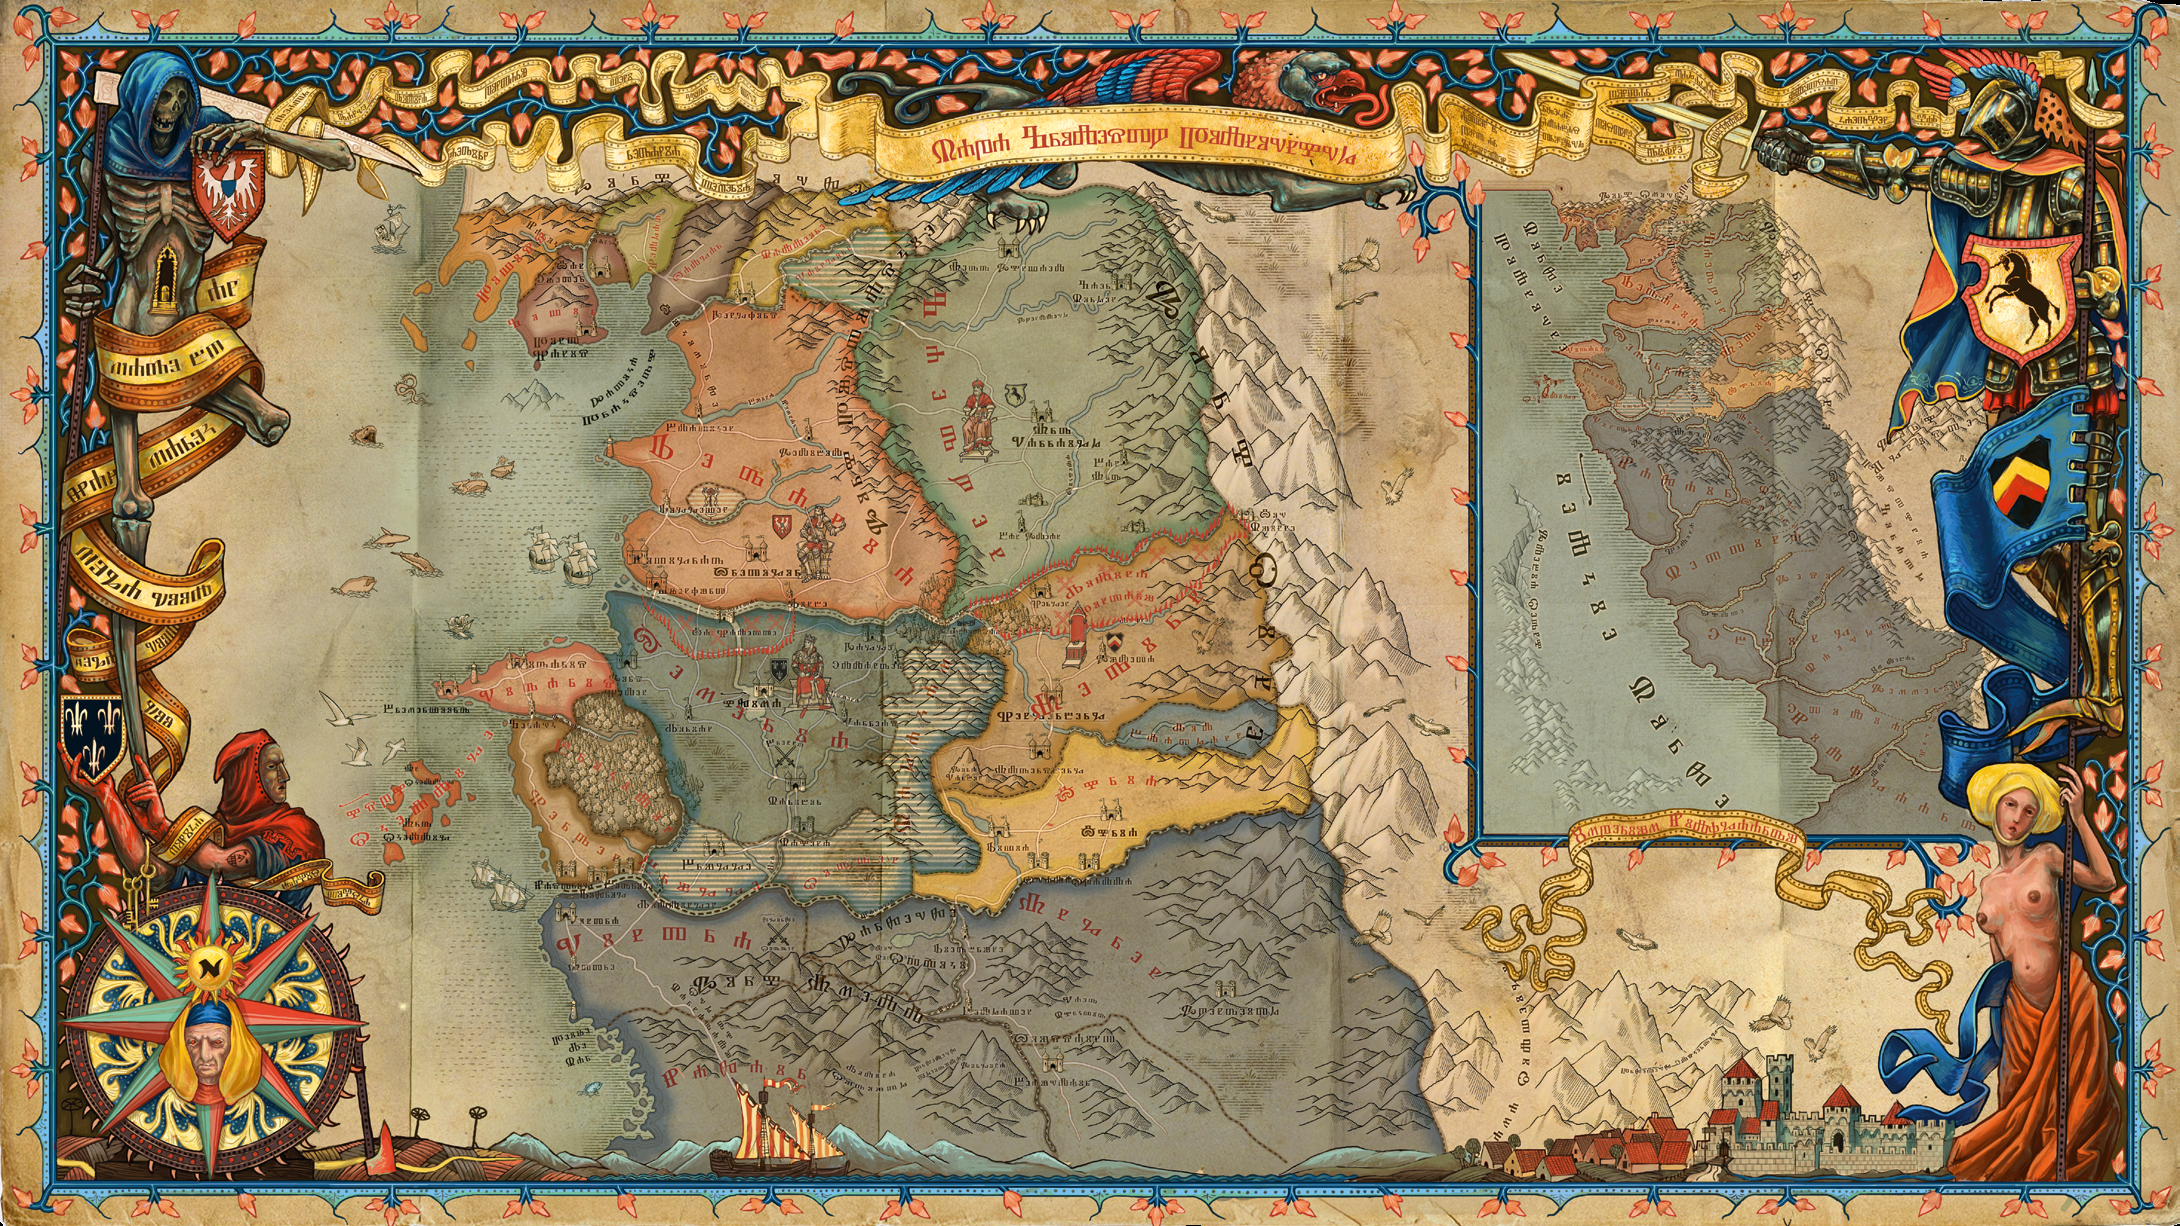 Mapa The Witcher 2.This Map Of The Witcher World From The Witcher 2 Artbook Is